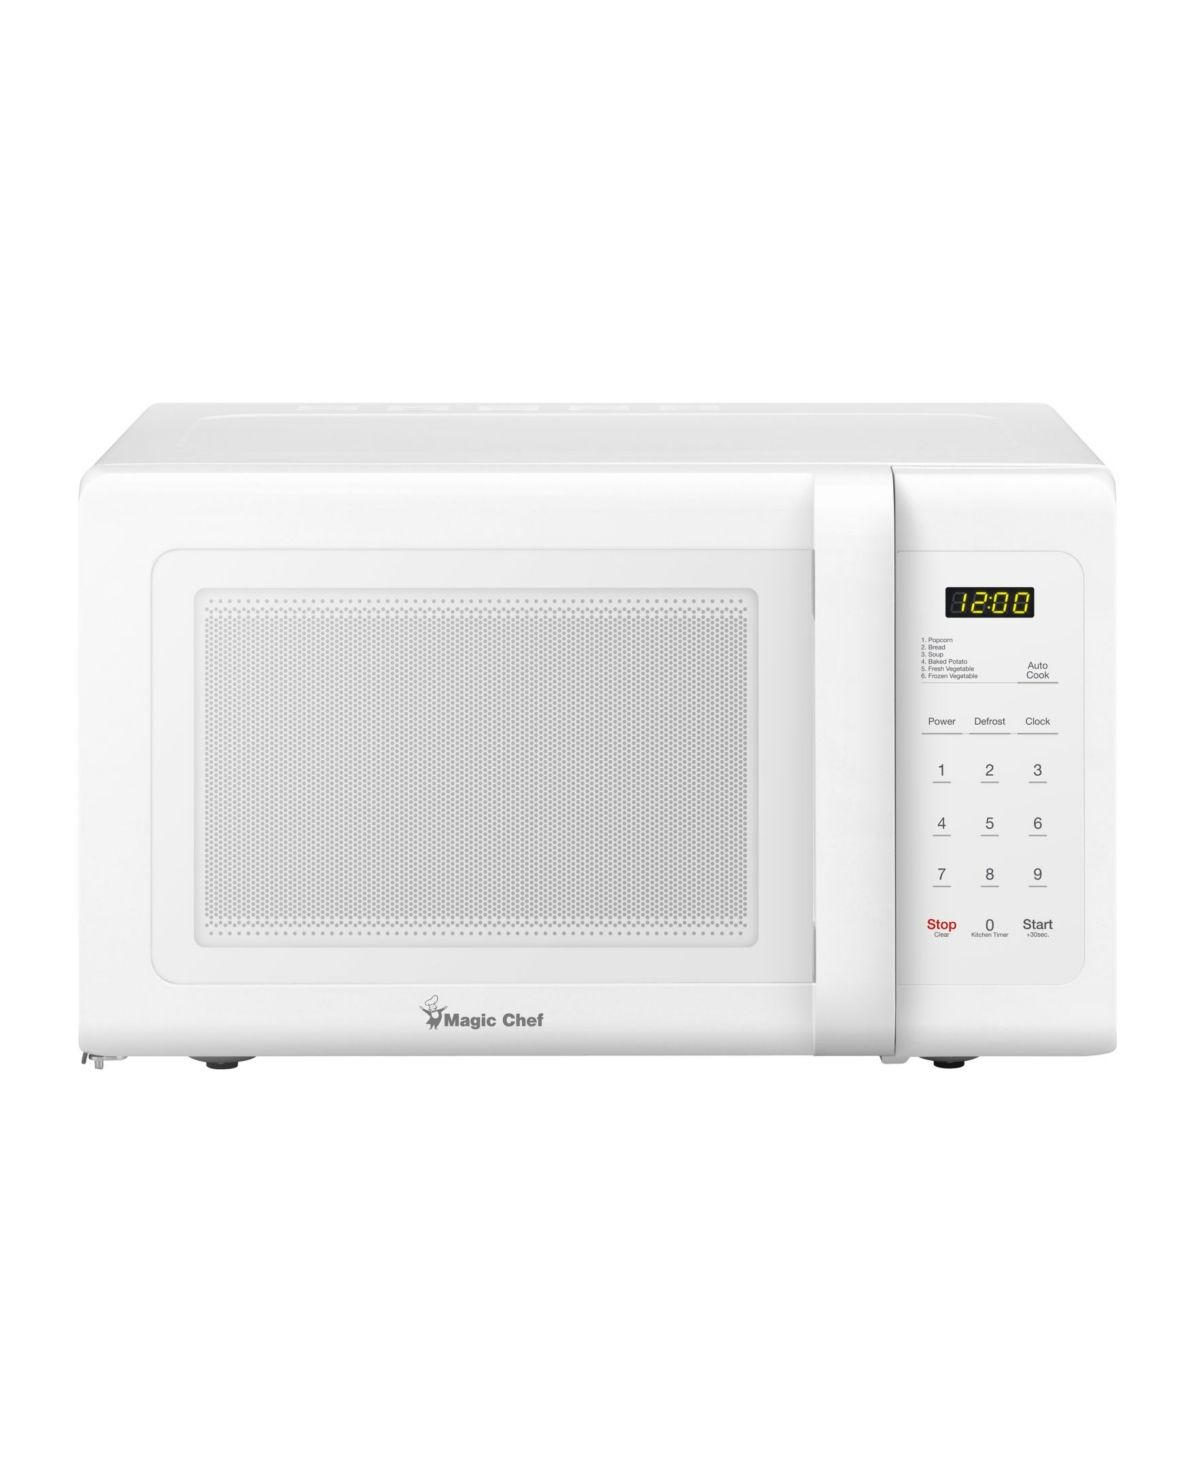 Pin On Best Microwave Under 100 Reviews